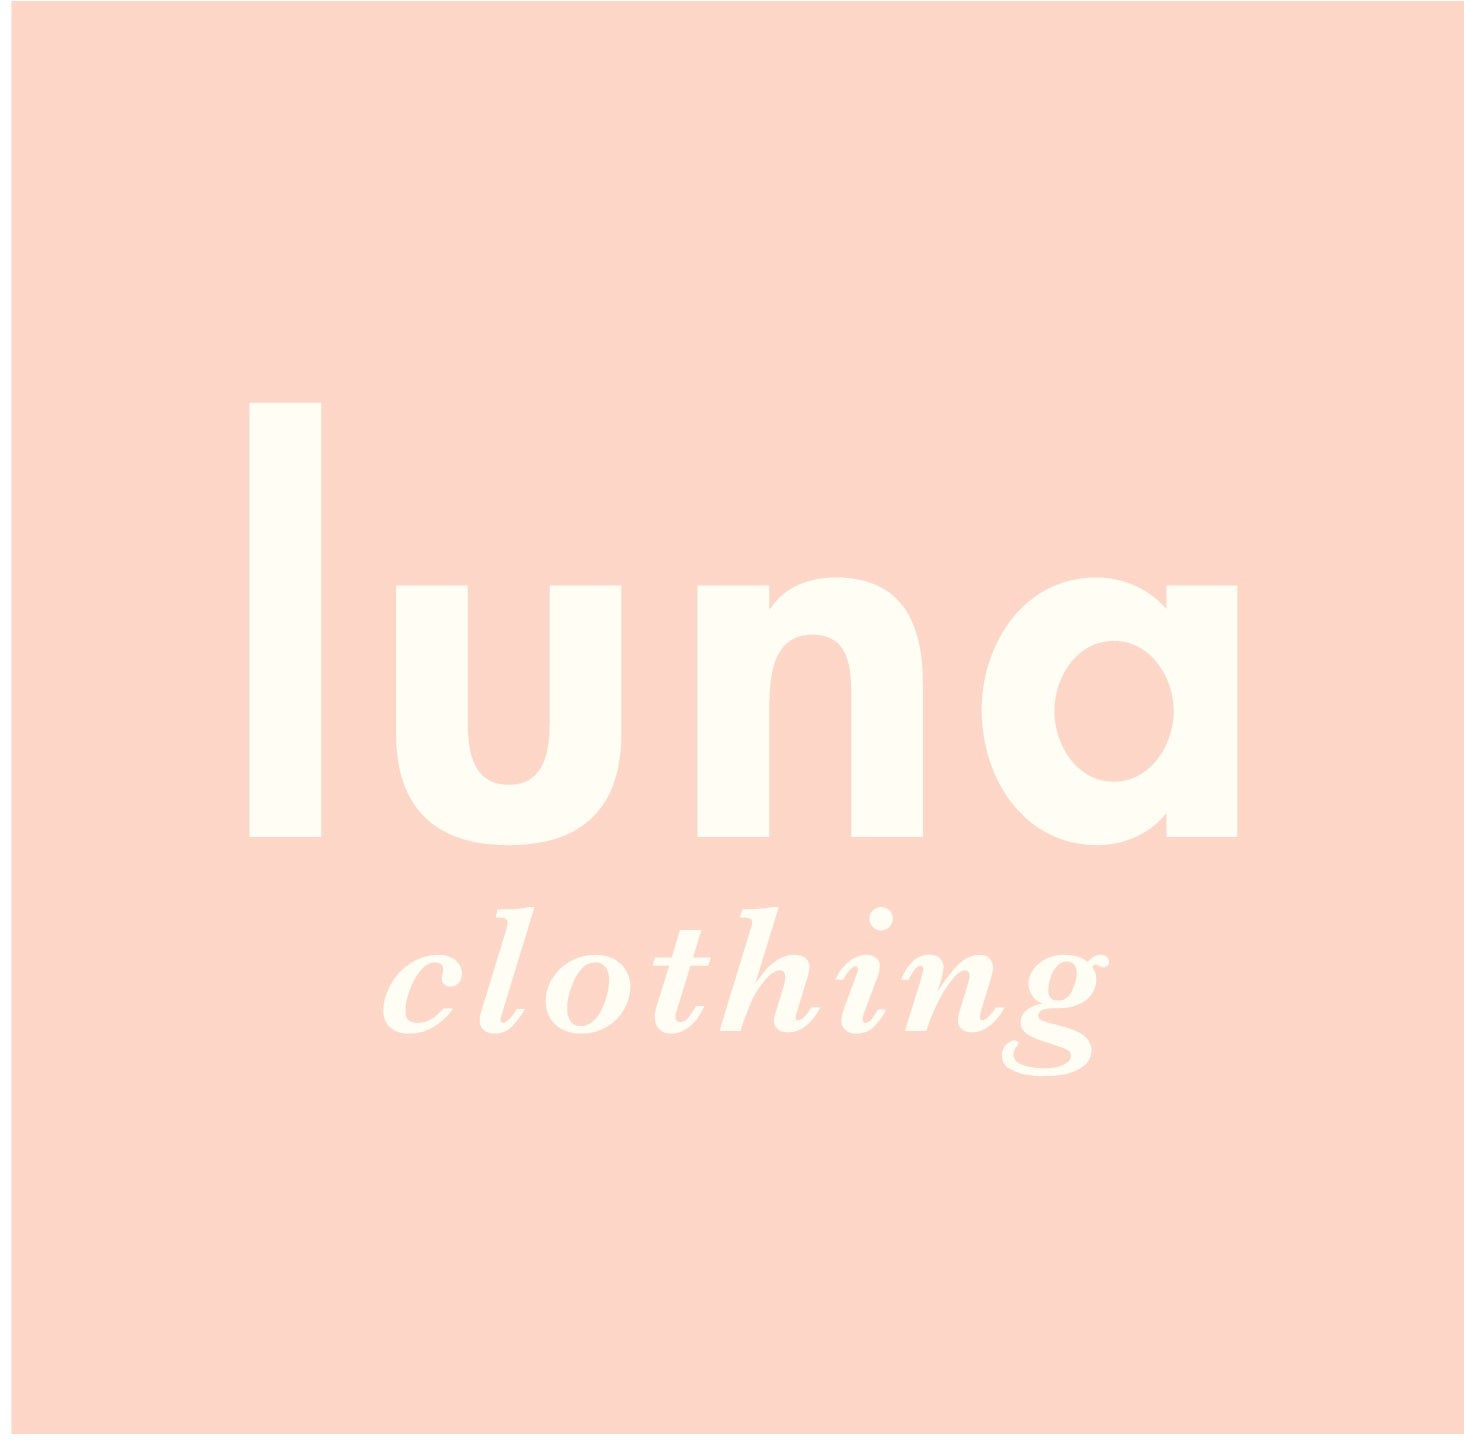 Luna — On trend clothing, jewelllery & accessories.